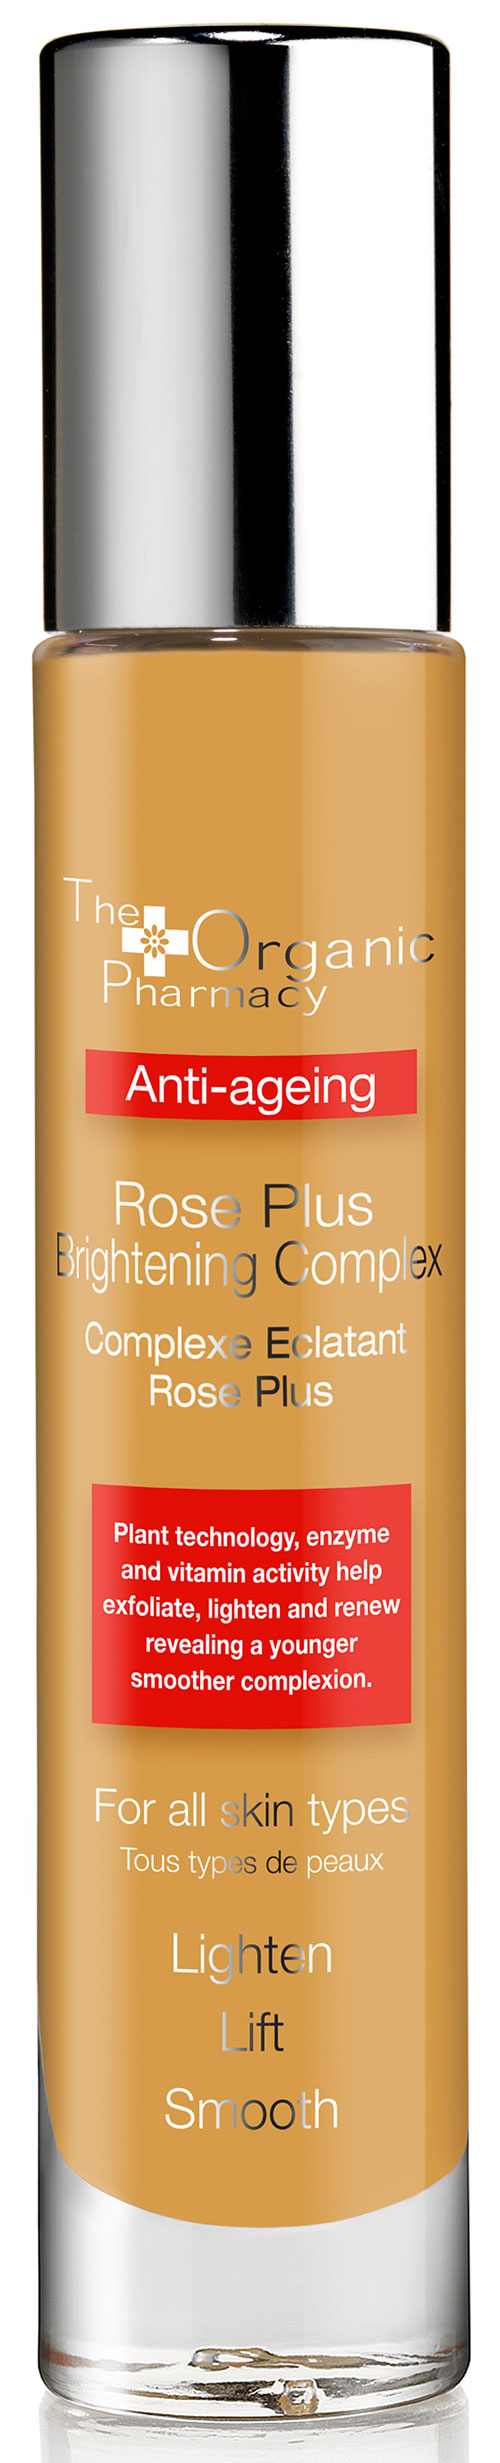 Rose-Plus-Brightening-Complex